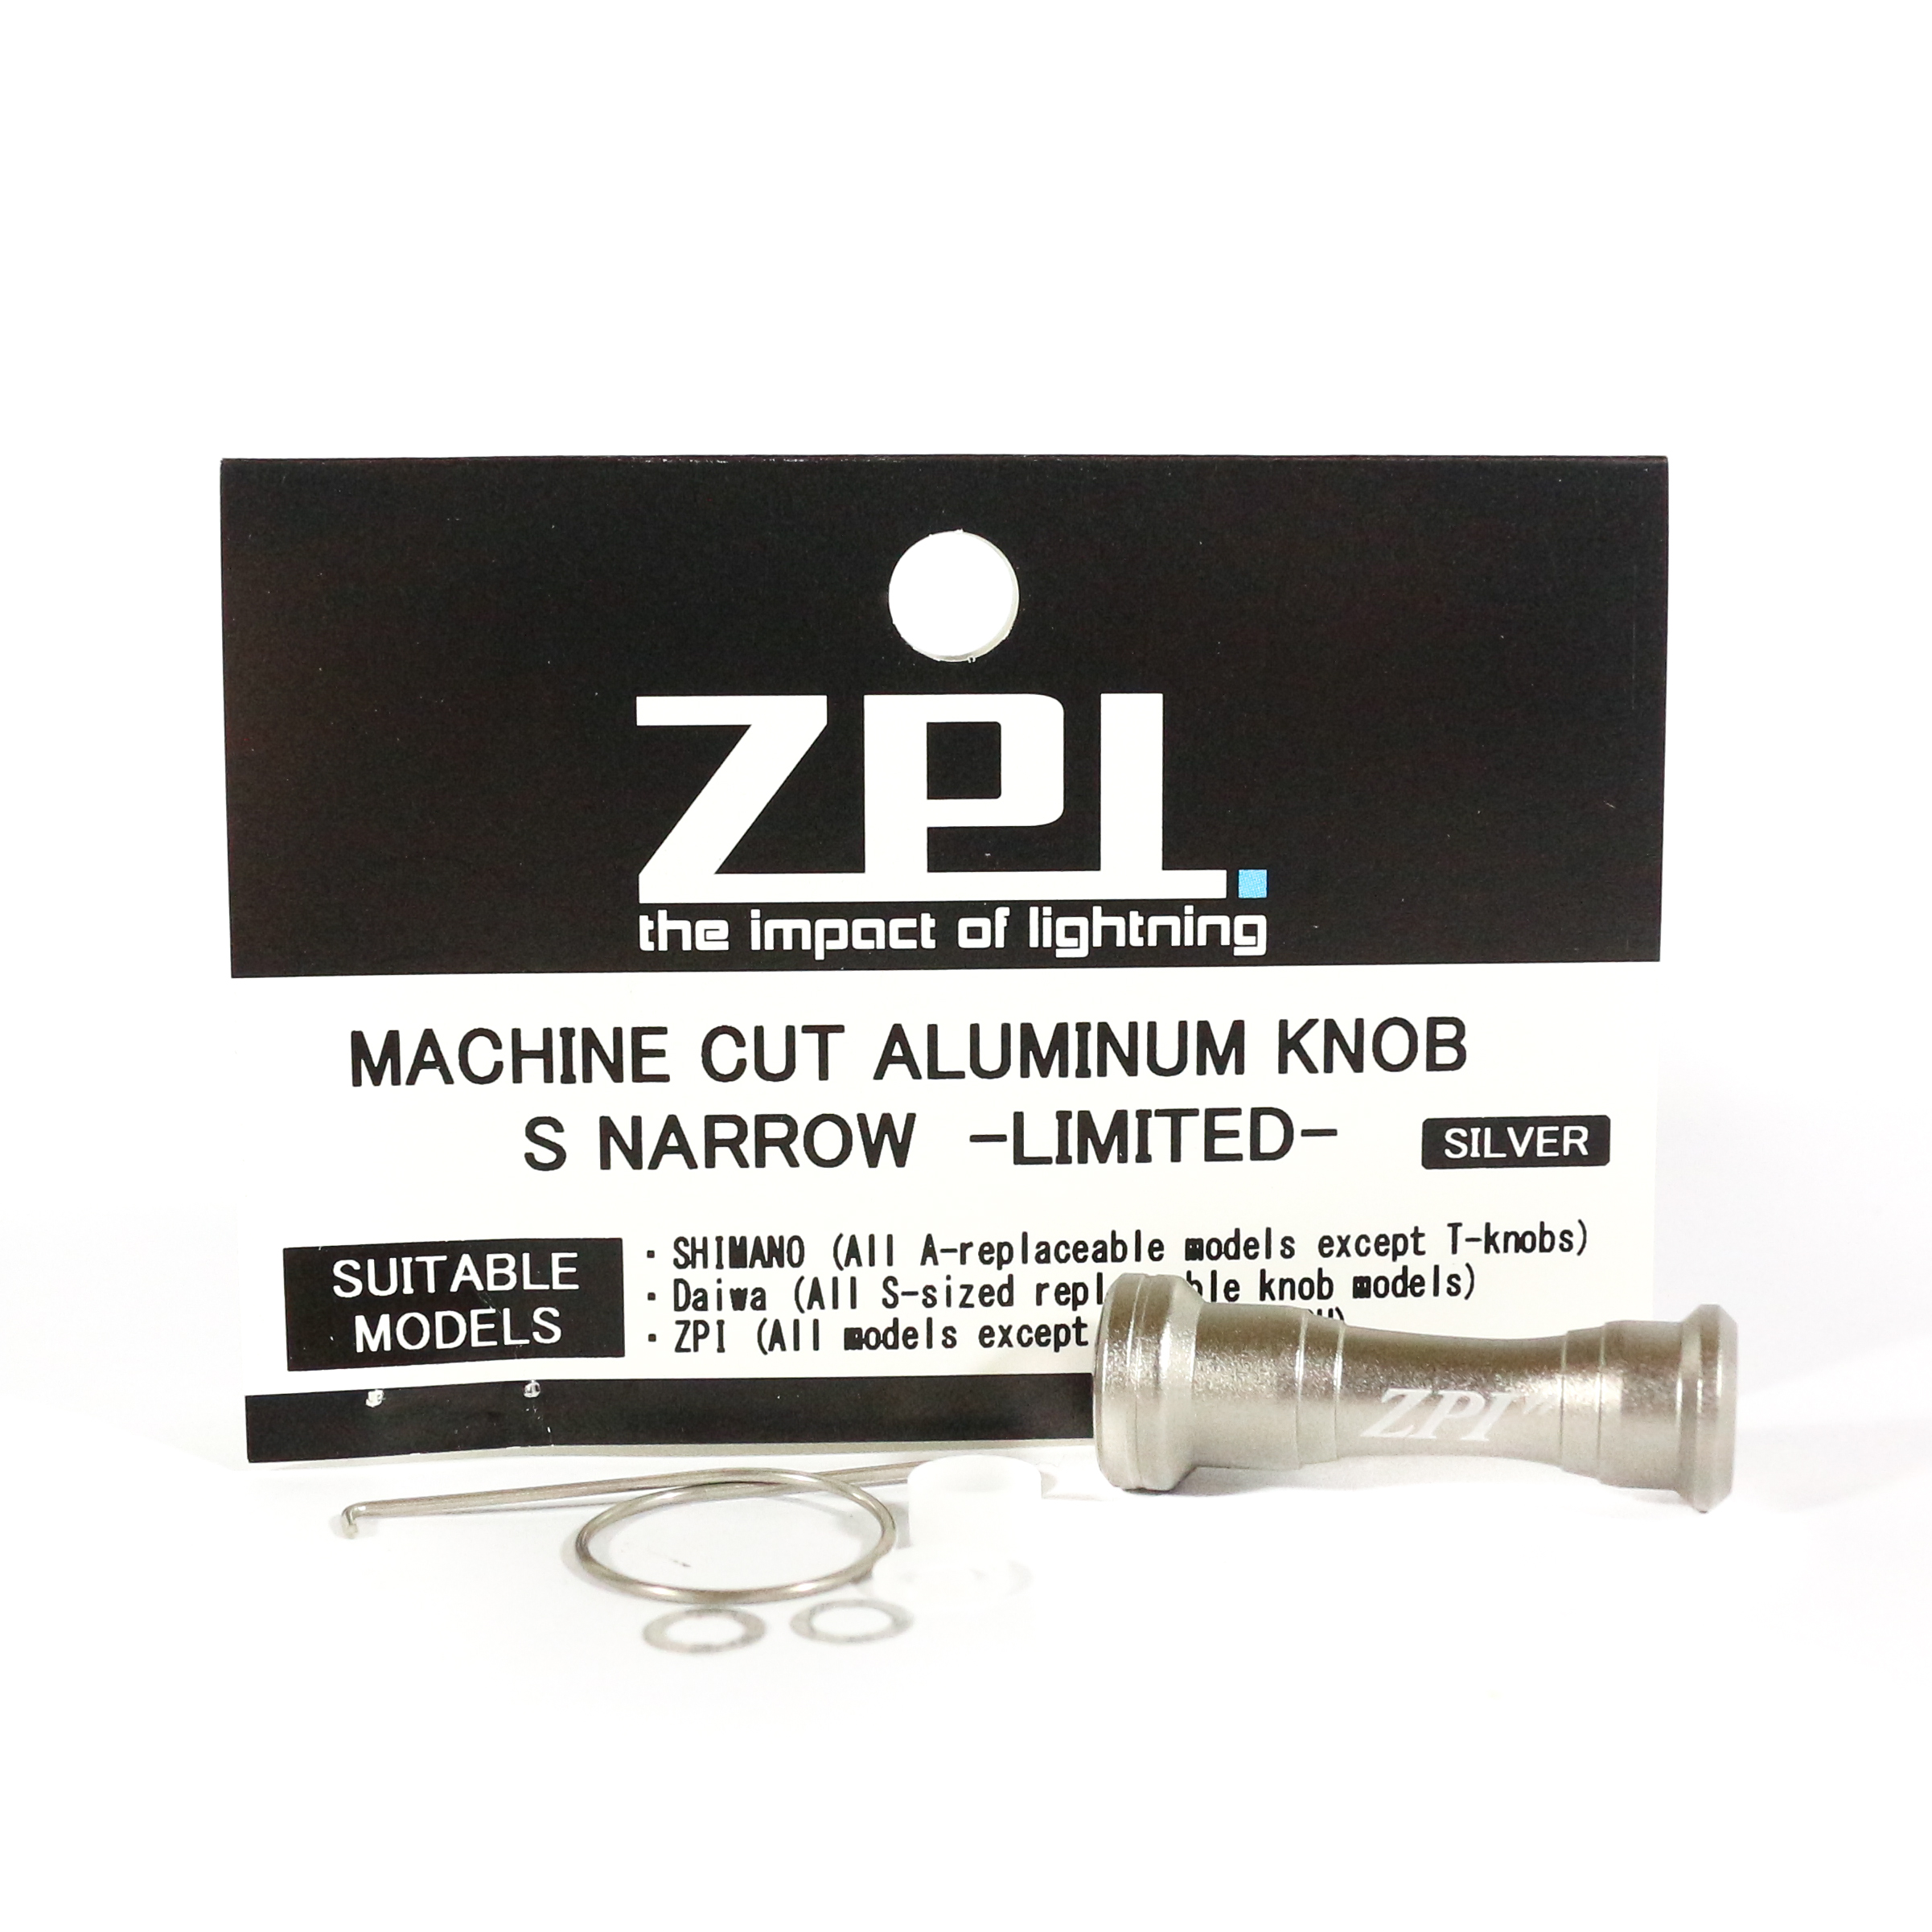 ZPI Aluminium S Narrow Ltd Knob 2.5 grams 34mm x 12mm Shimano Daiwa SL (0005)